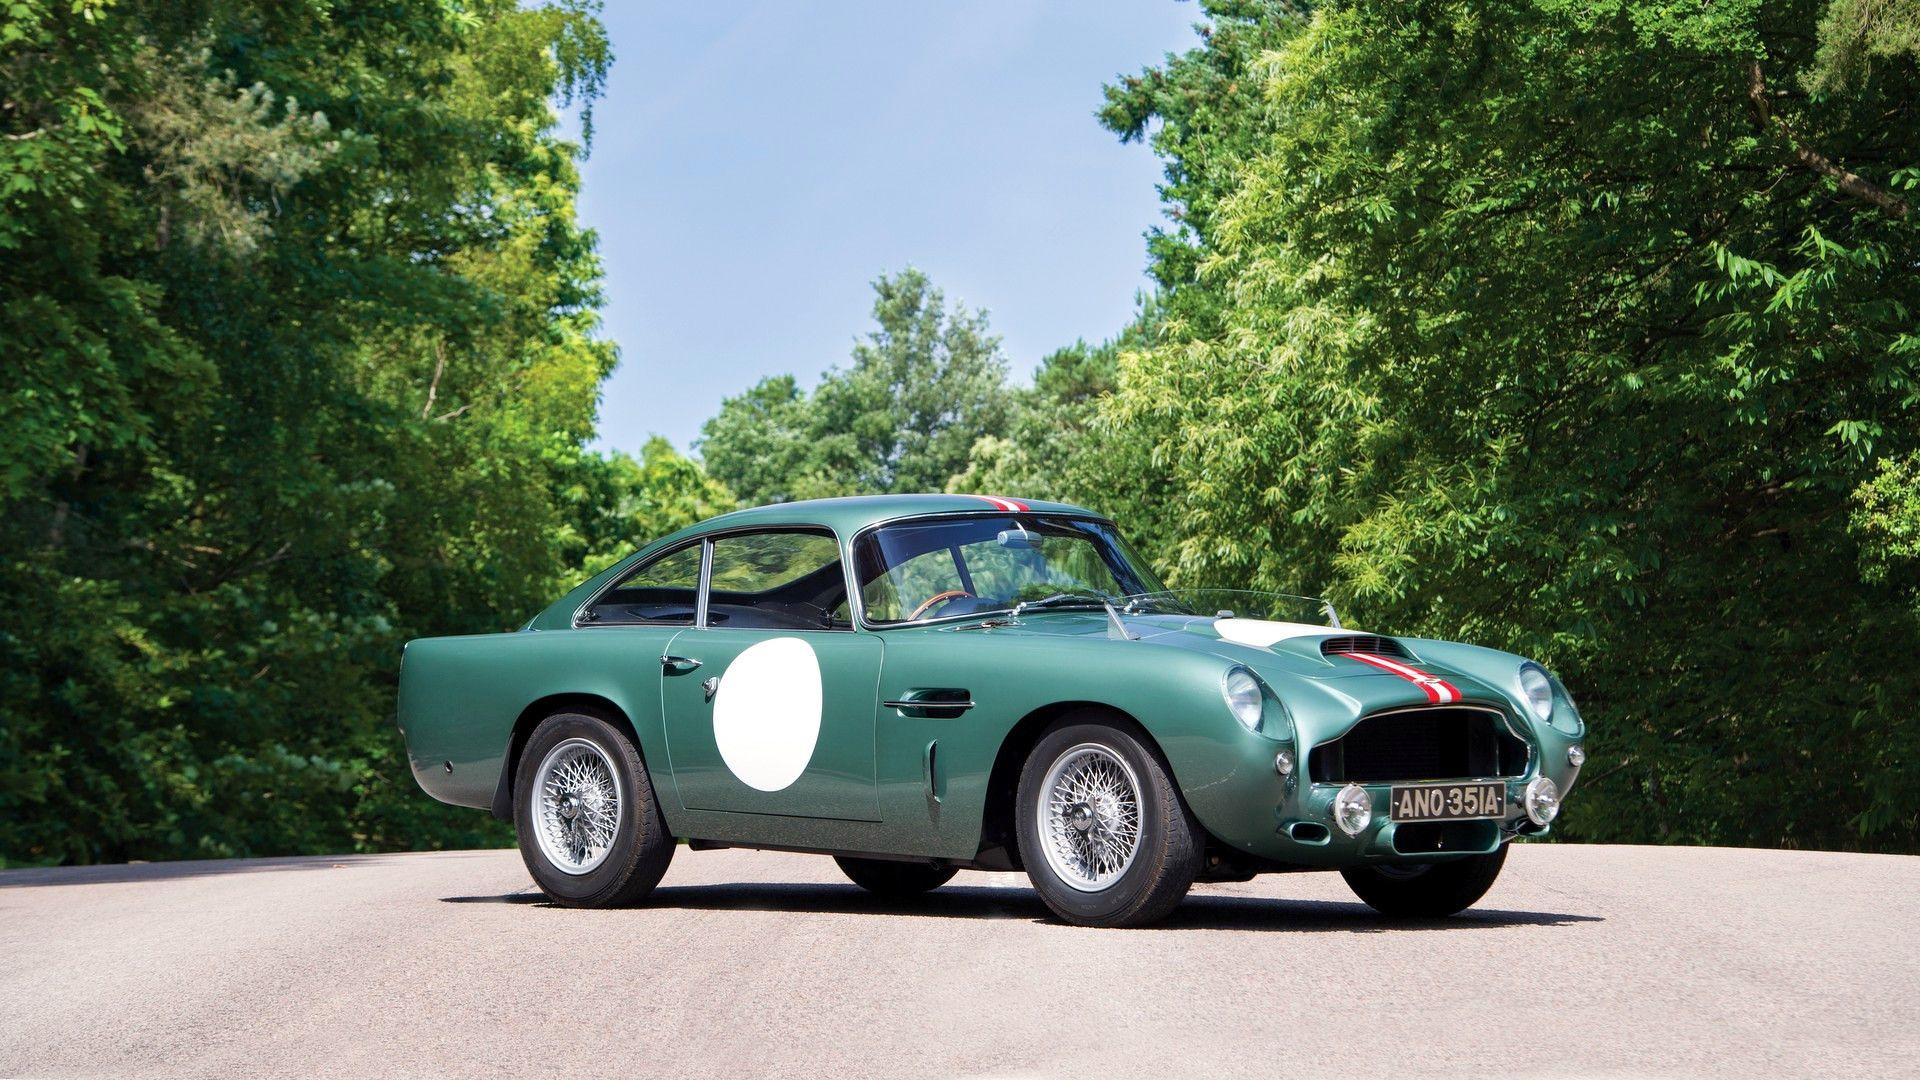 1959-aston-martin-db4gt-copyright-tim-scott-rm-sothebys